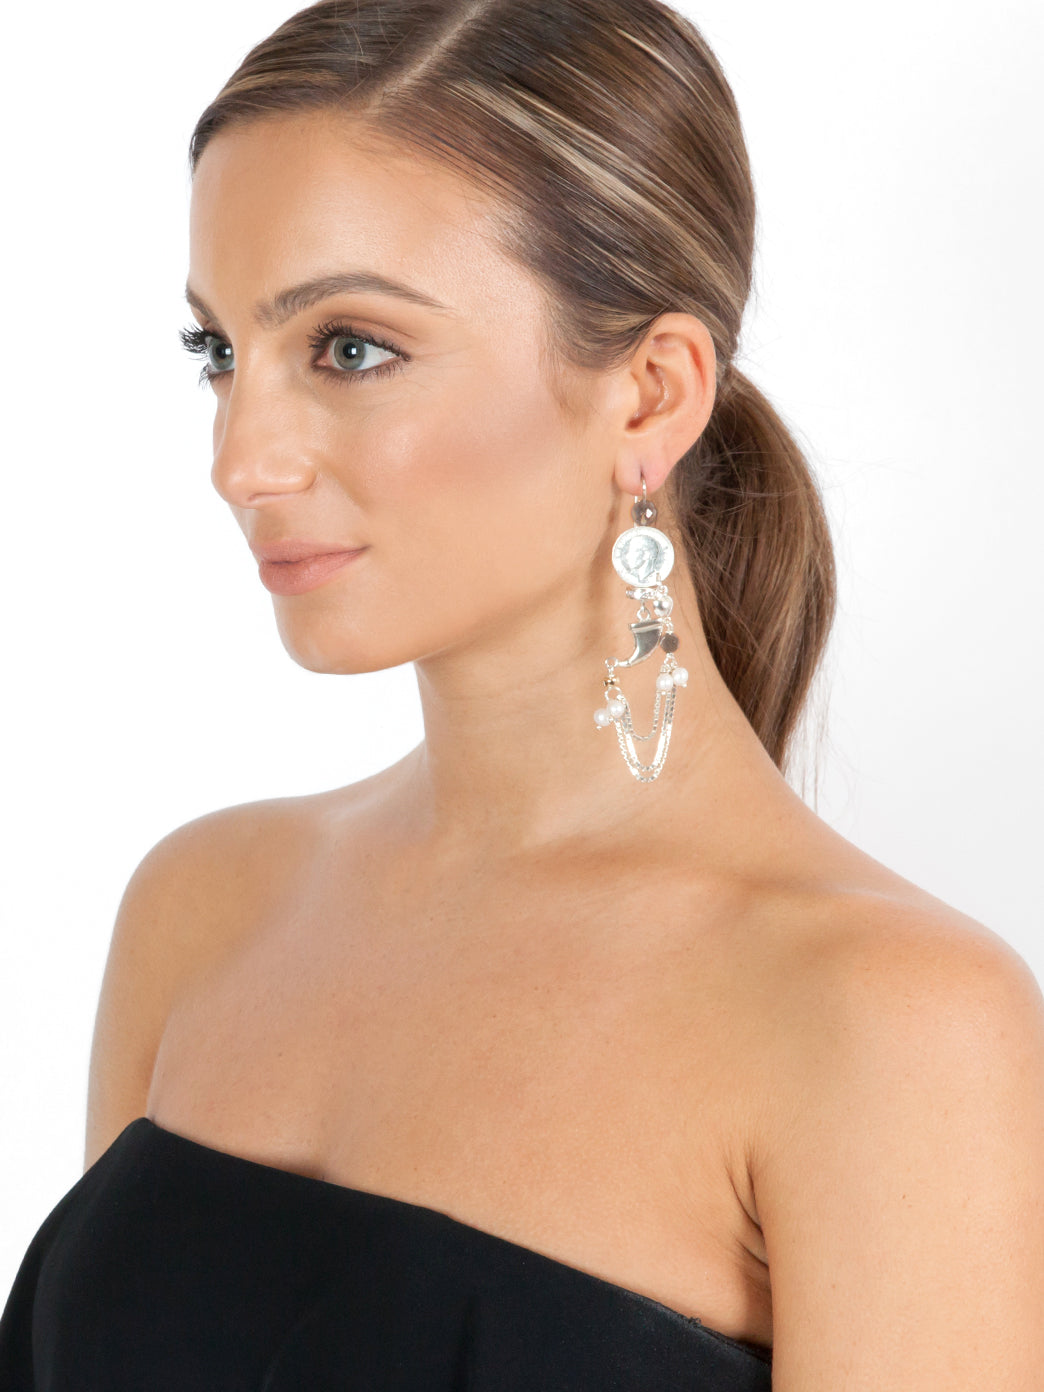 Fiorina Jewellery Raj Claw Moonstone Earrings